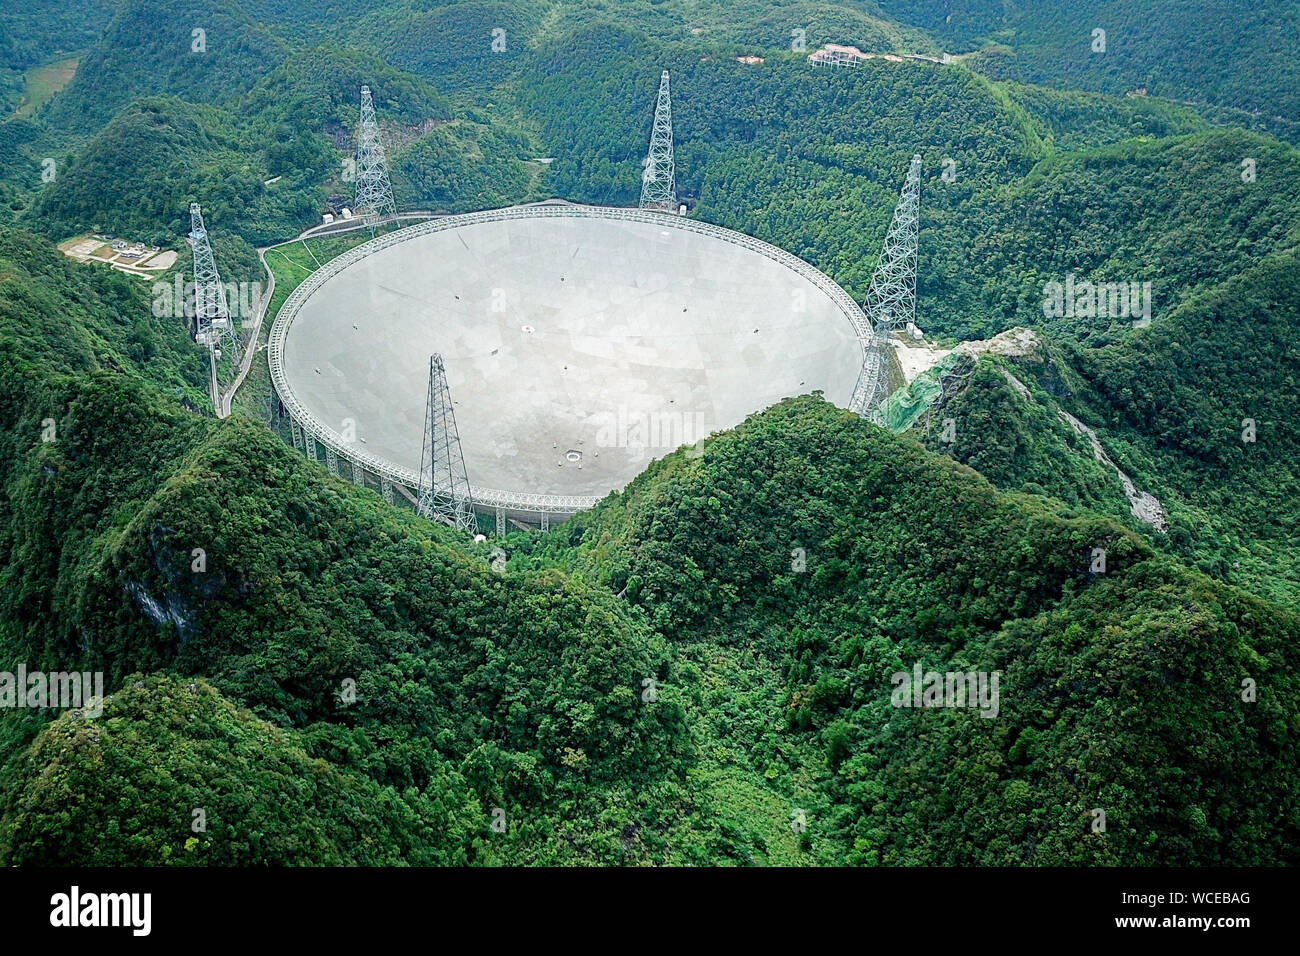 Pingtang. 27th Aug, 2019. Aerial photo taken on Aug. 27, 2019 shows China's Five-hundred-meter Aperture Spherical radio Telescope (FAST) in southwest China's Guizhou Province. China's FAST, the world's largest single-dish radio telescope, will greet the third anniversary of operation that began in September 2016. Credit: Ou Dongqu/Xinhua/Alamy Live News Stock Photo